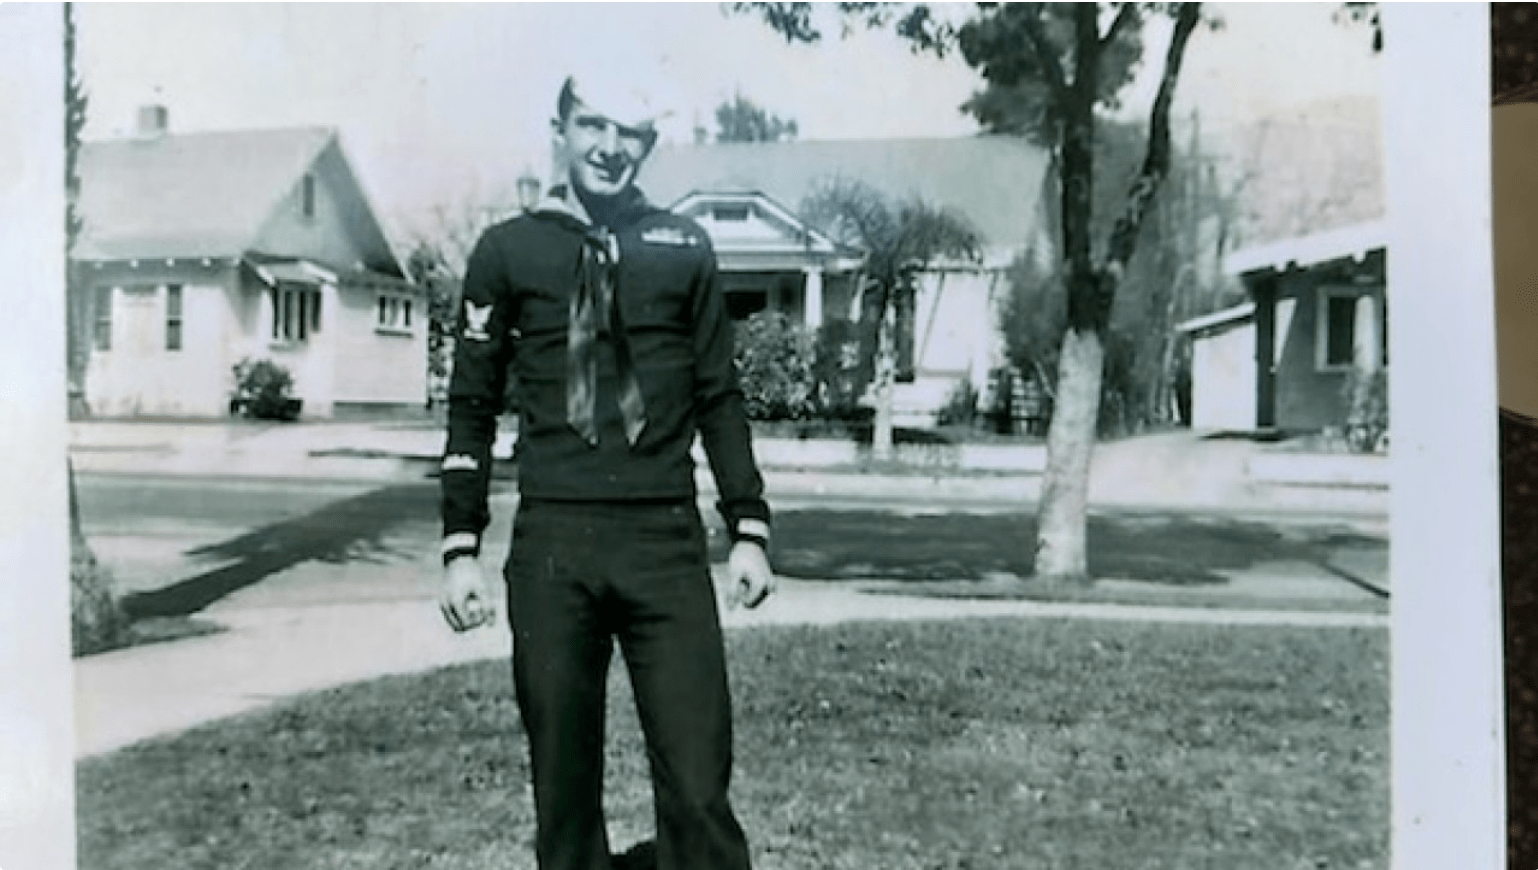 Old photo of navy soldier